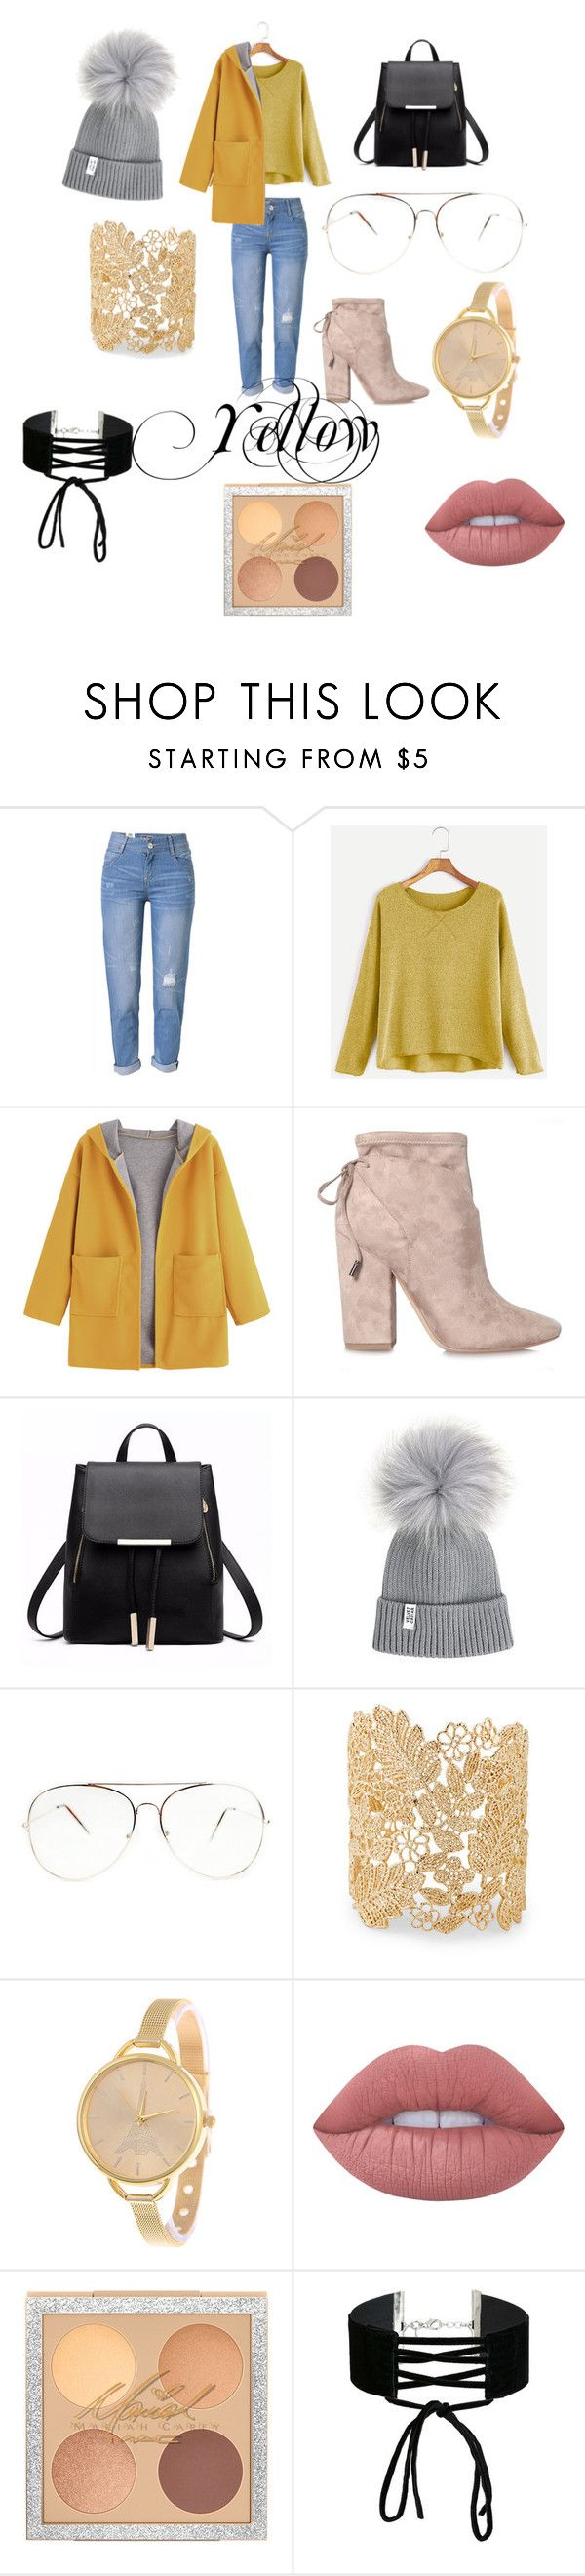 """""""Geen titel #25"""" by romy-ny on Polyvore featuring mode, WithChic, Kendall + Kylie, Sole Society, Lime Crime en Miss Selfridge"""